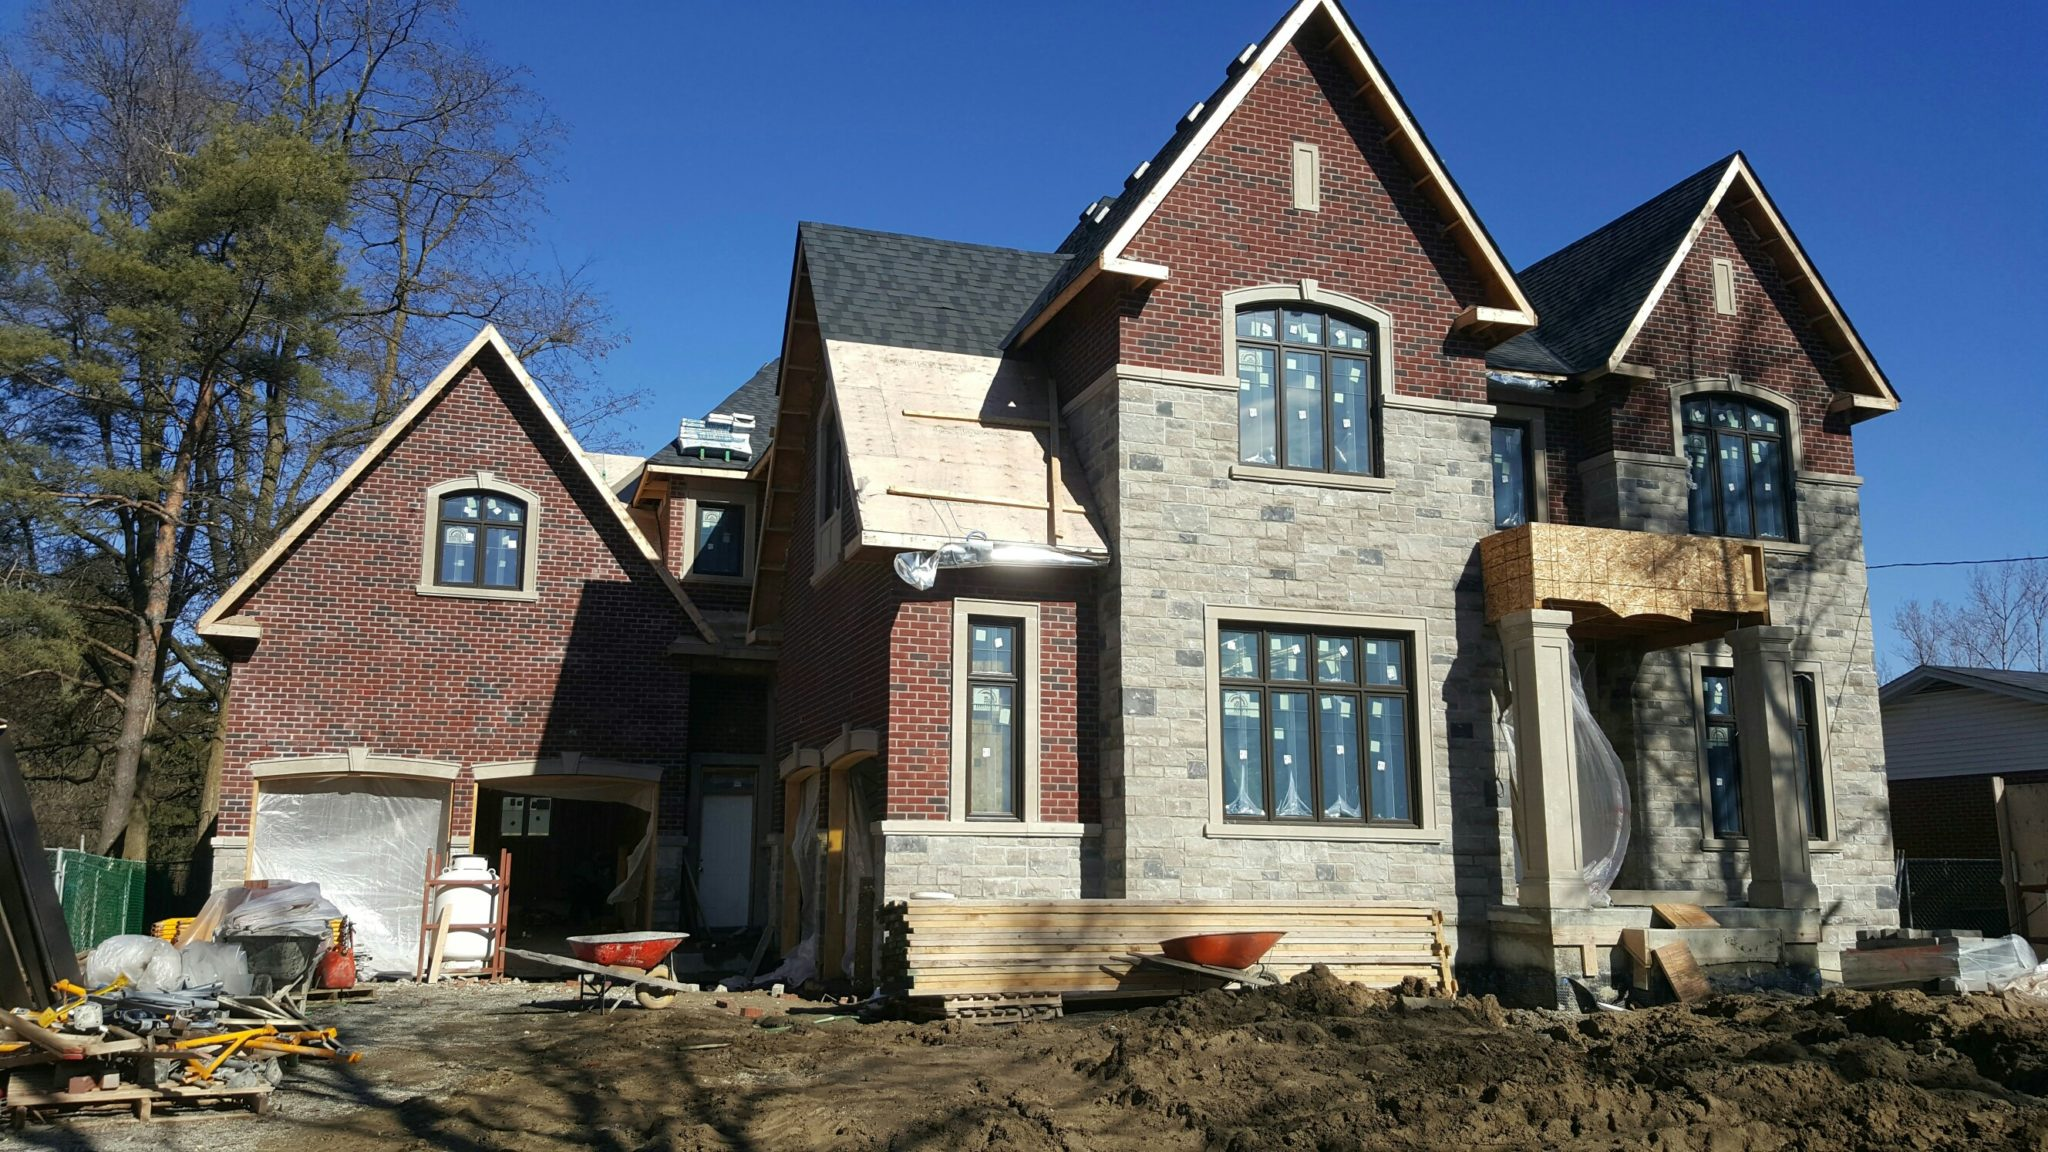 this is a Red Queen Brick and permacon stone precast custom home masonry contractor built in richmondhill by amplify masonry